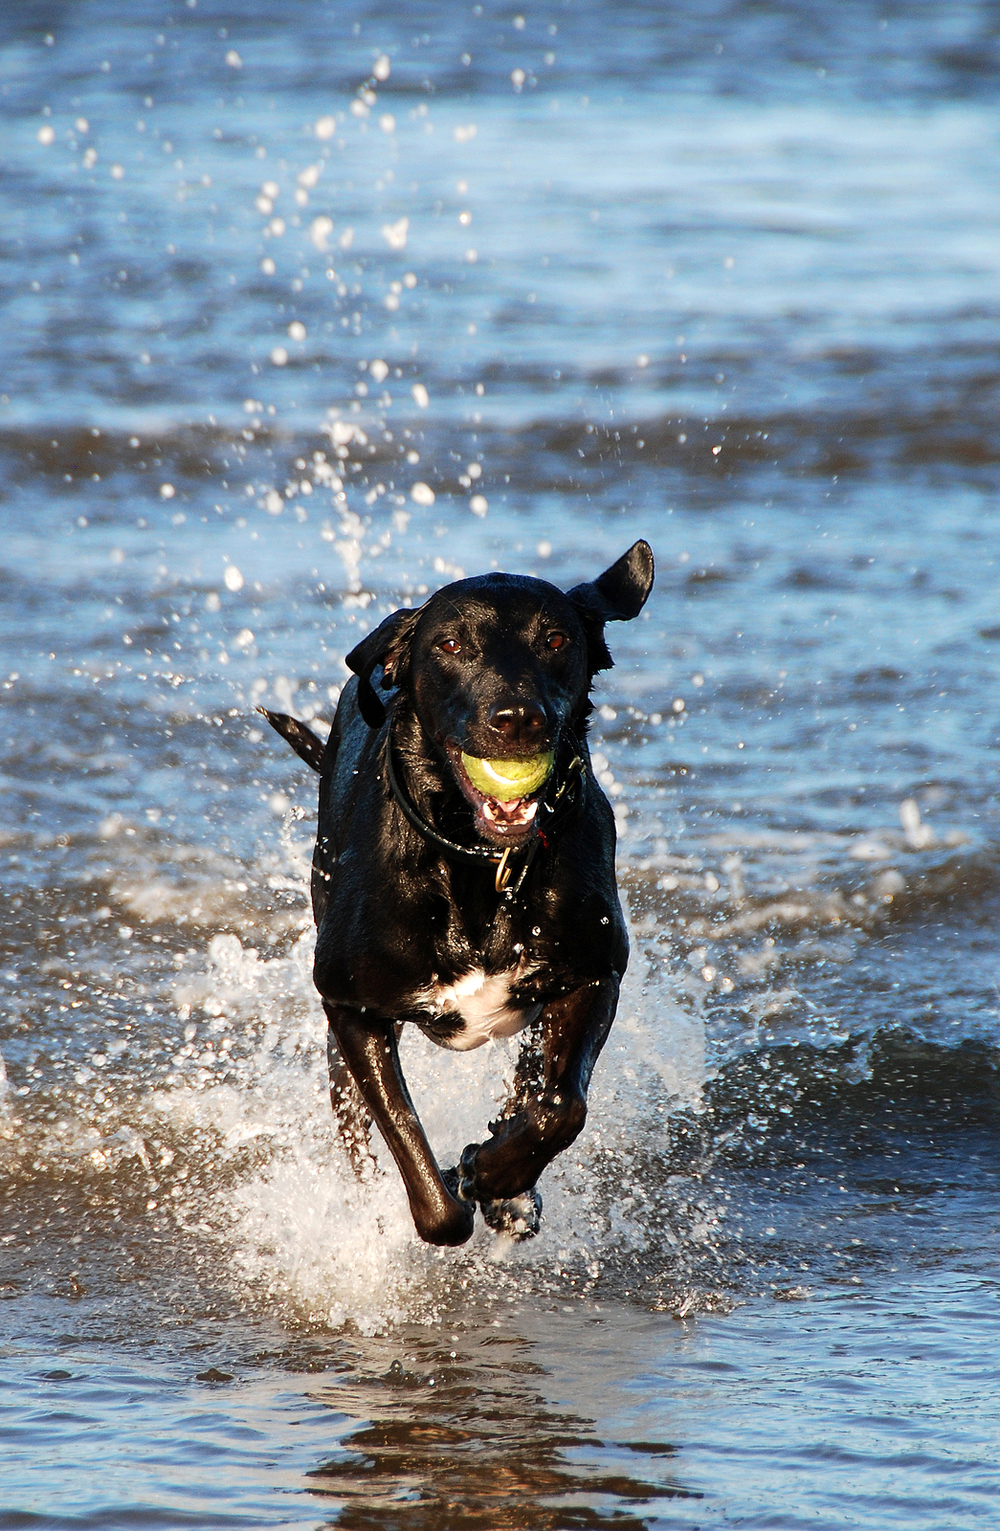 bigstock-Black-Dog-Playing-In-Water-5182279.jpg